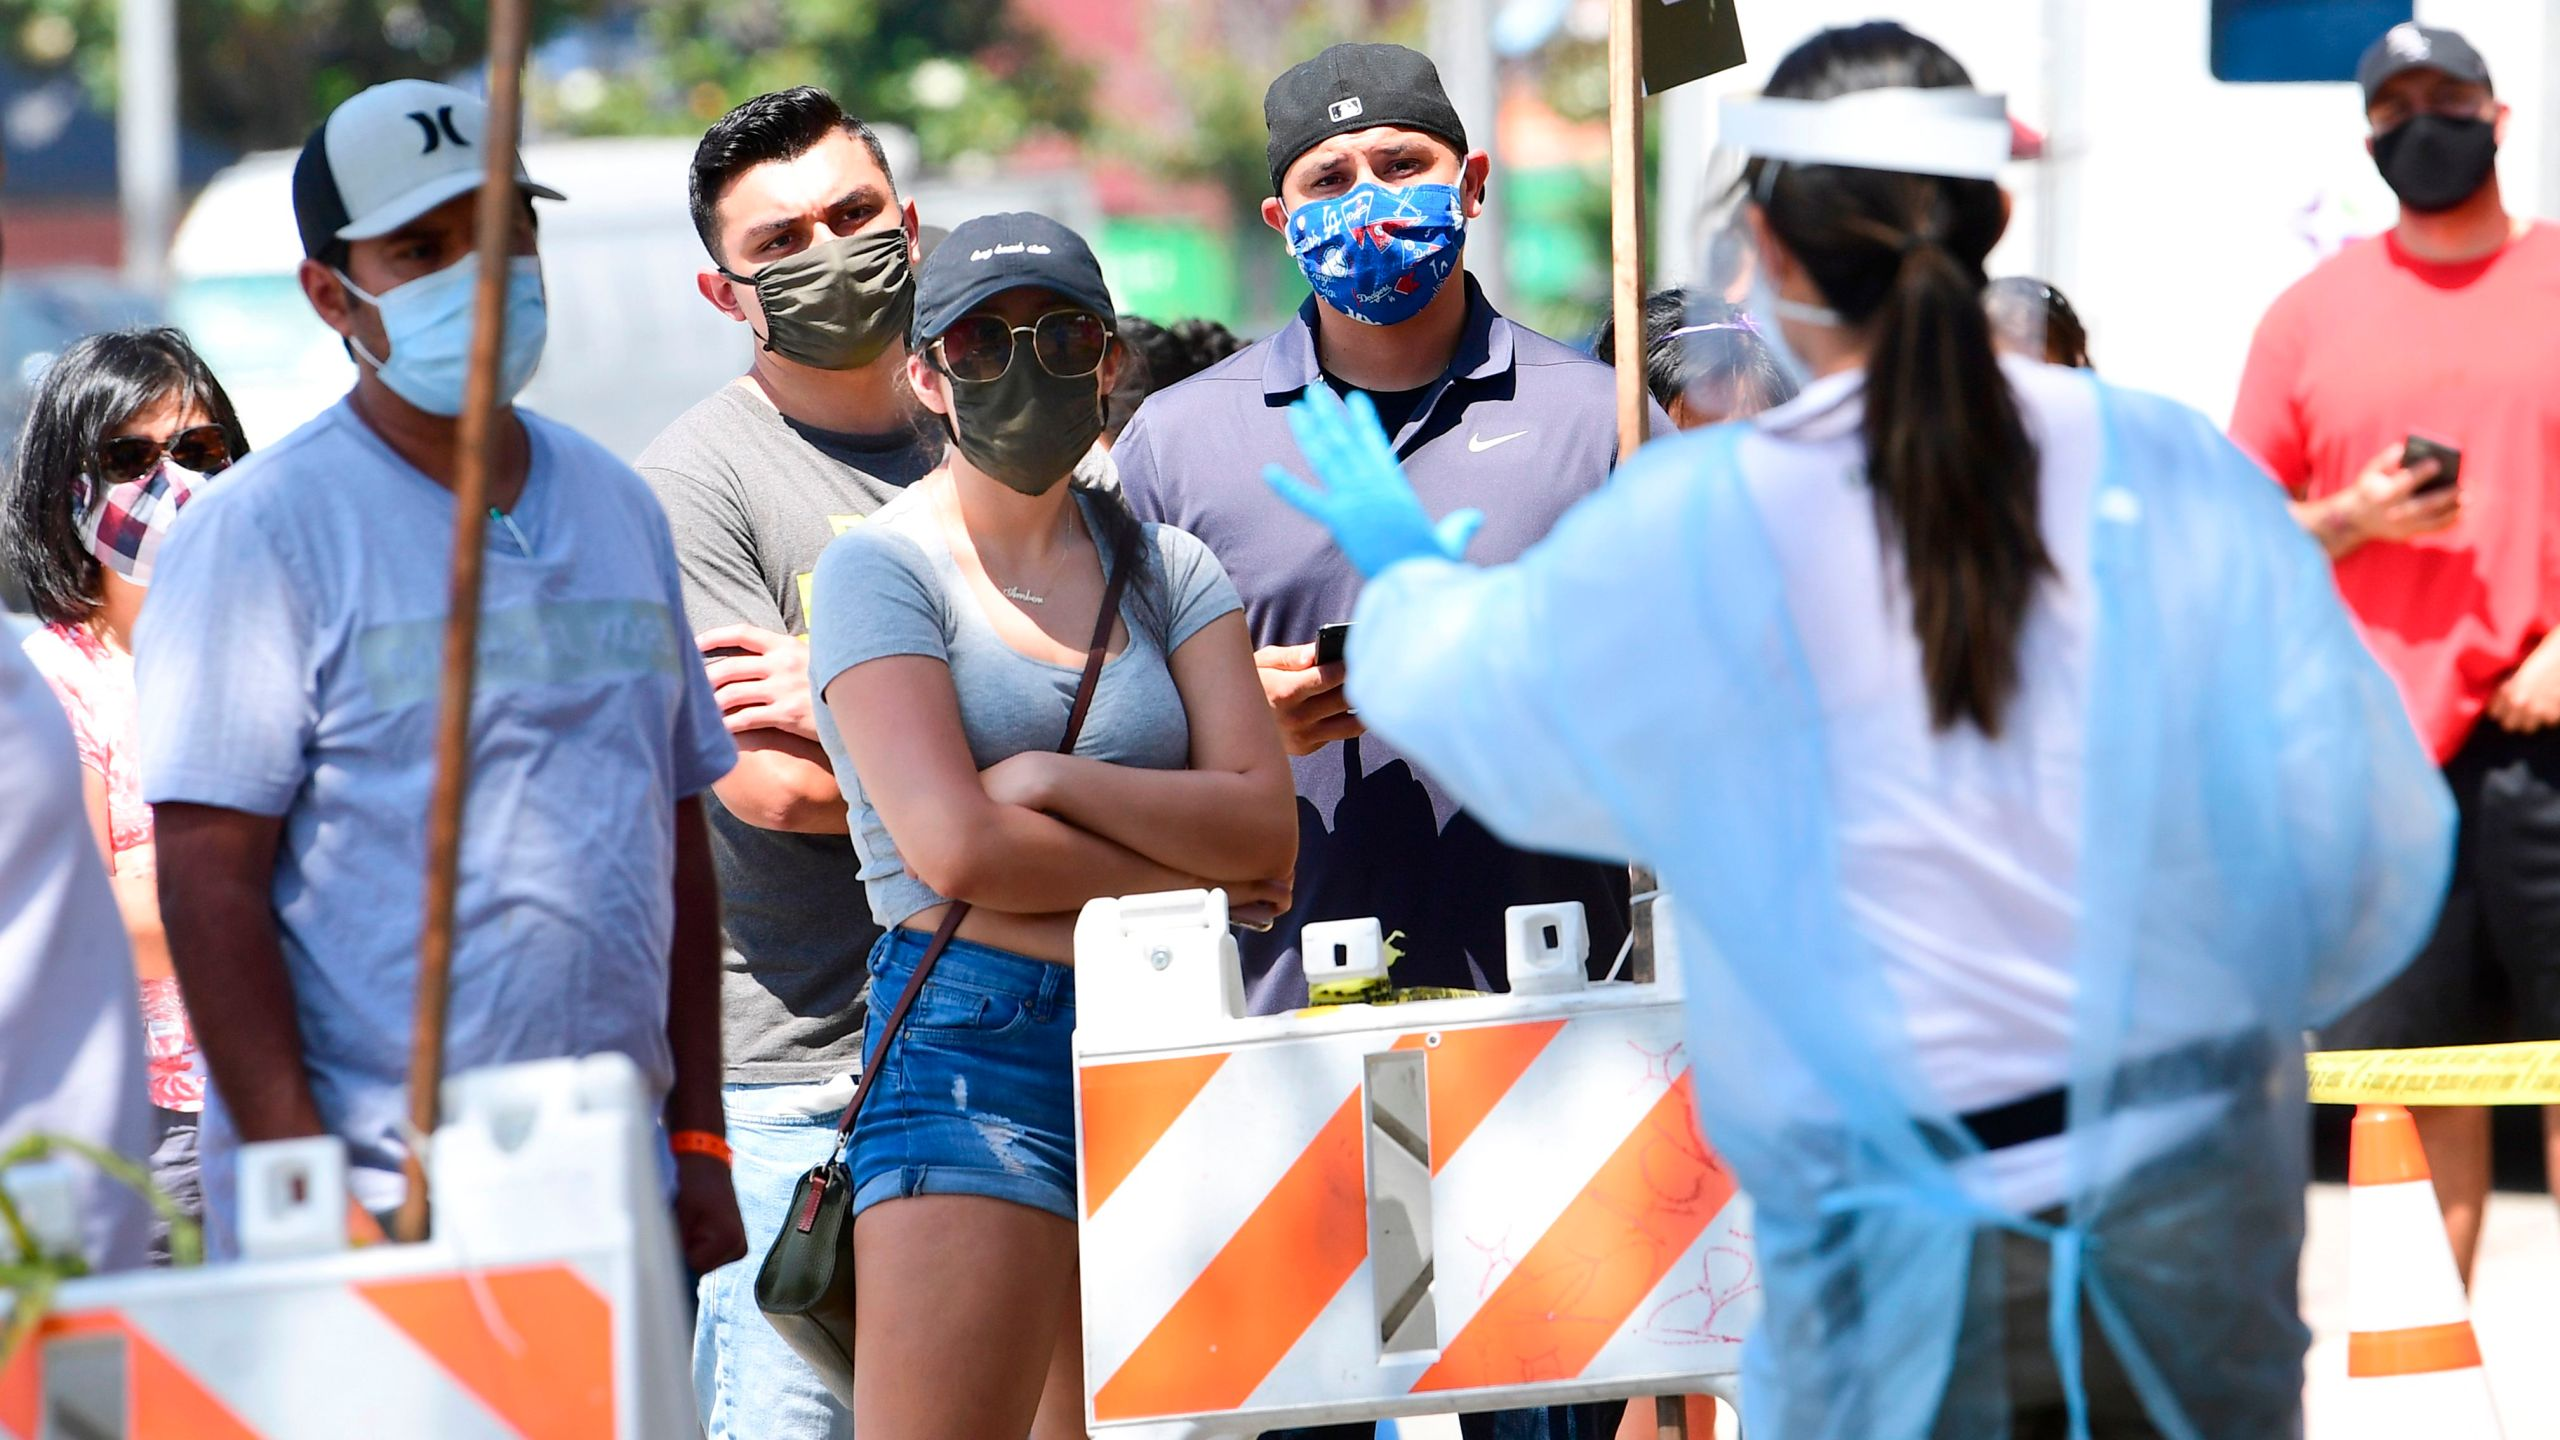 A COVID-19 test site volunteer gives directions to people waiting in line at a walk-in coronavirus test site in Los Angeles on July 10, 2020. (Frederic J. Brown / AFP / Getty Images)